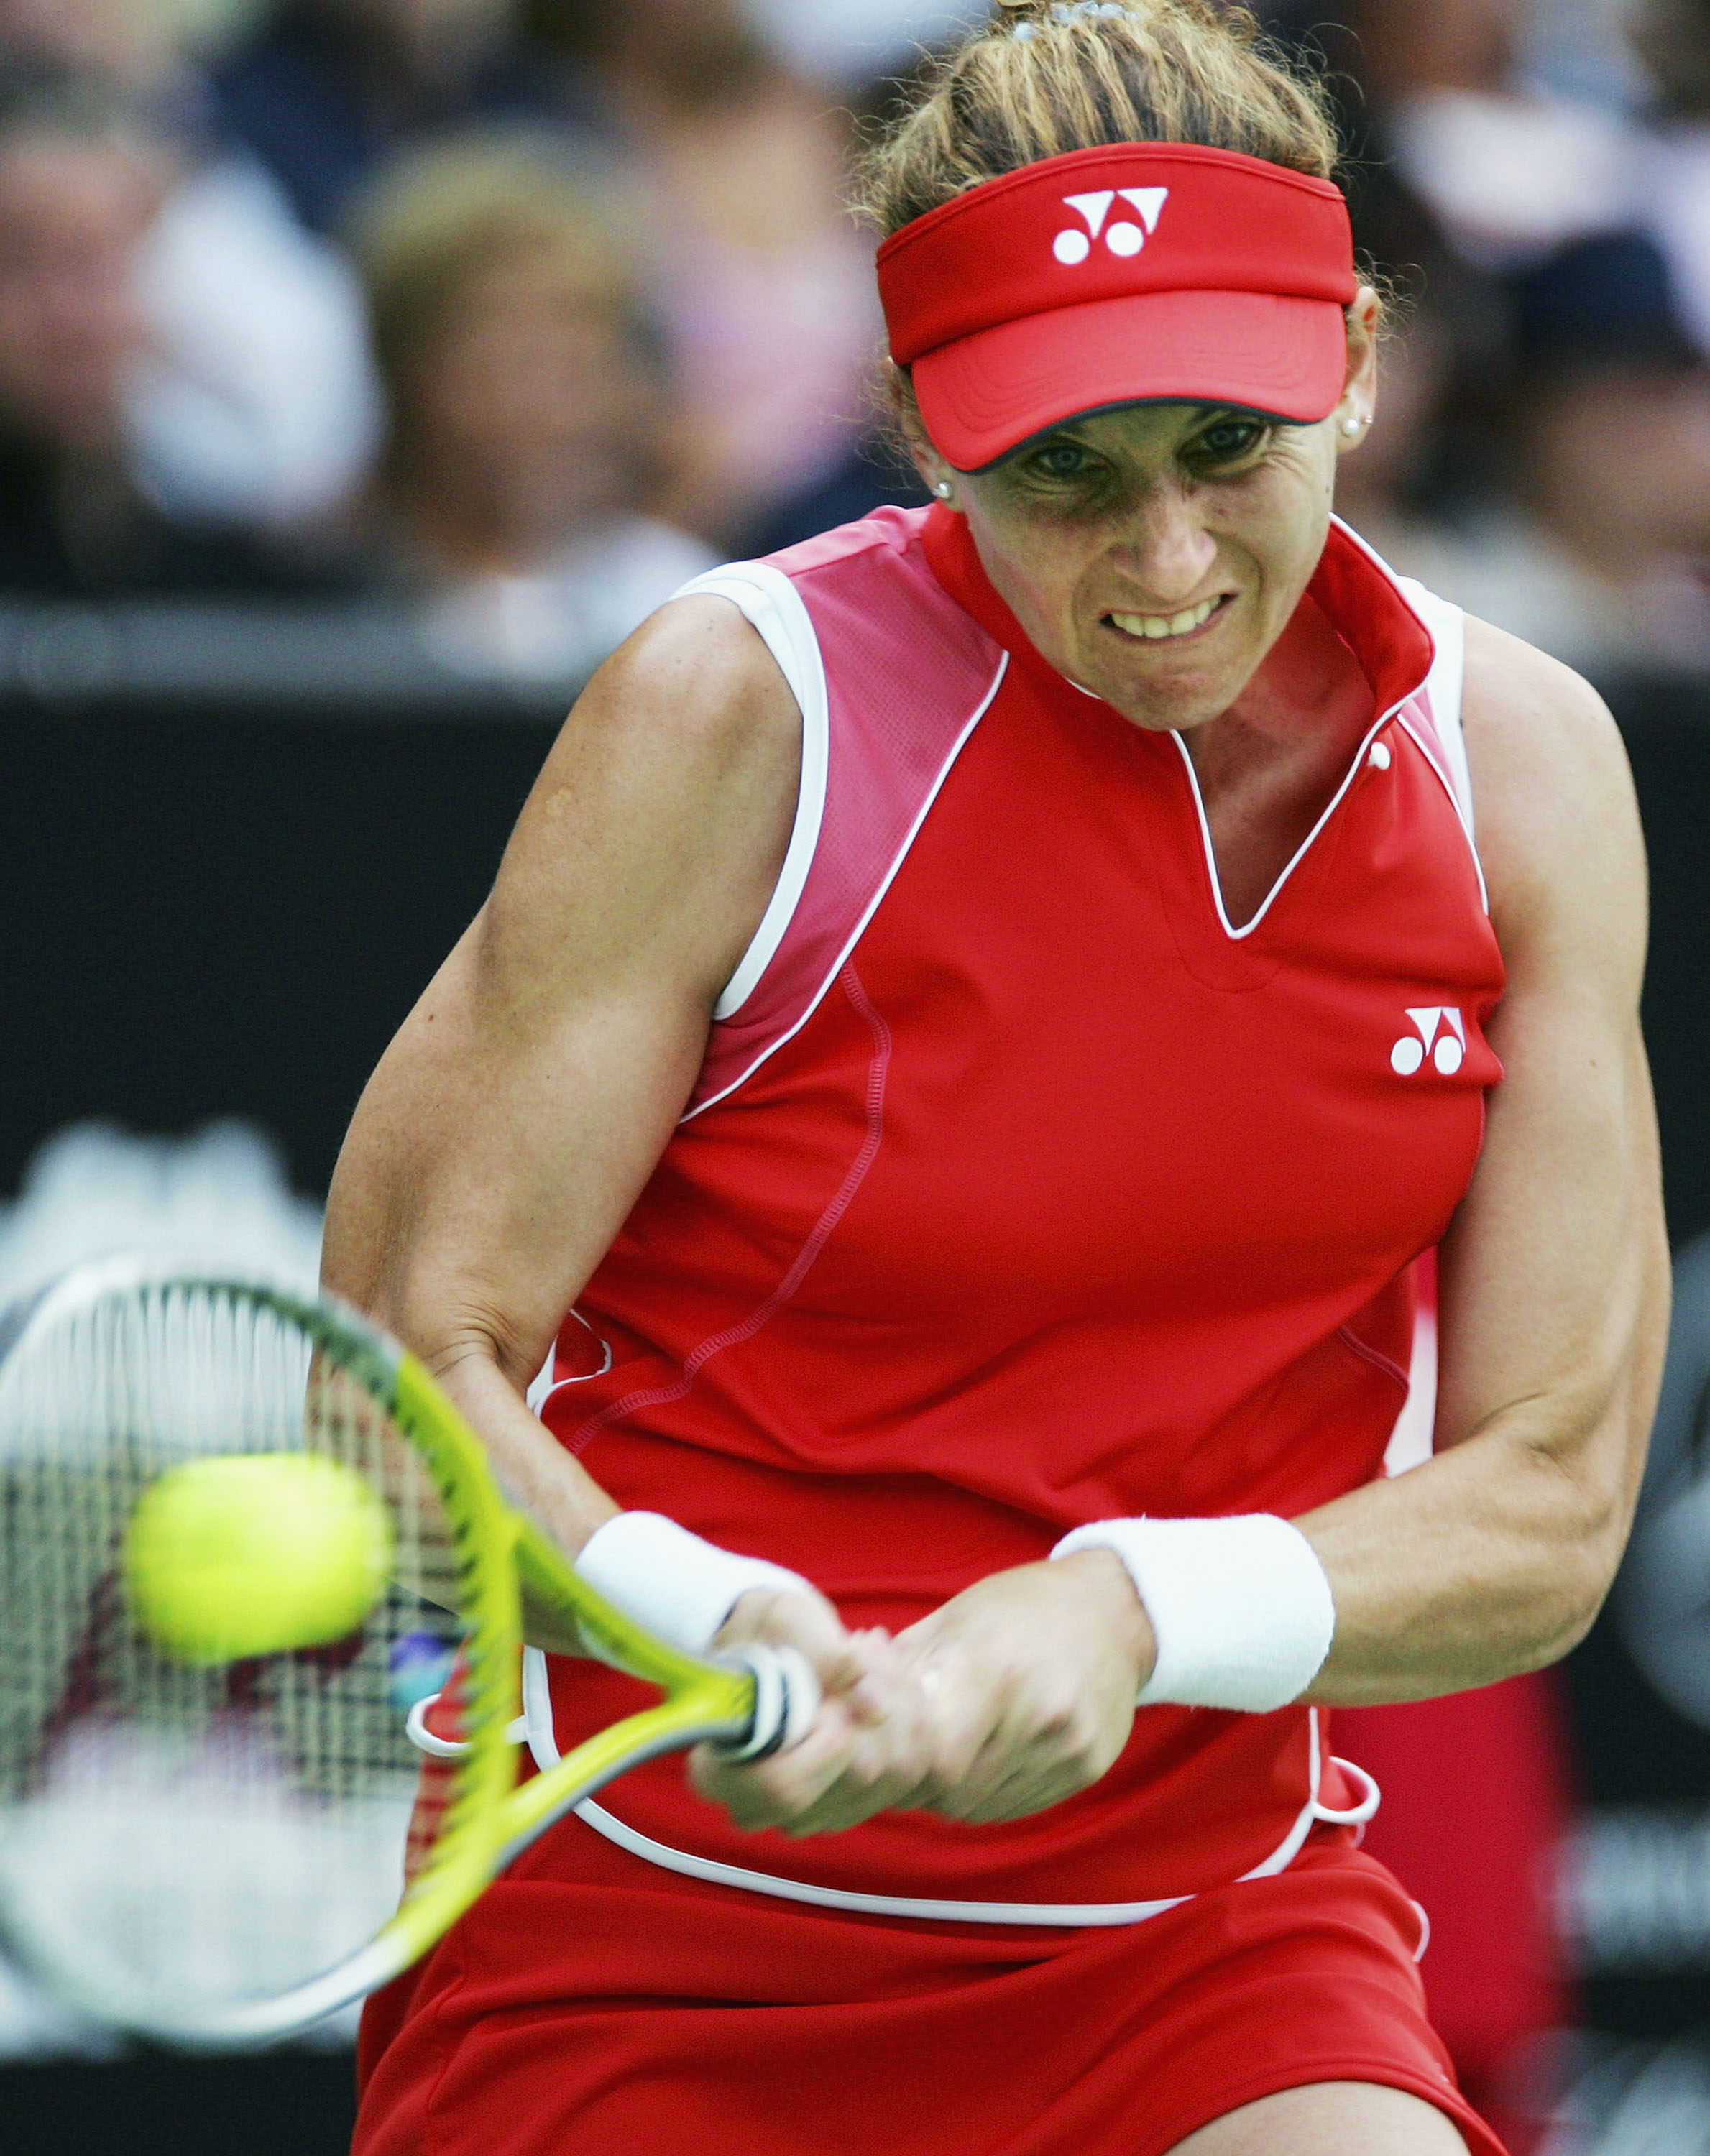 AUCKLAND, NEW ZEALAND - FEBRUARY 1:  Monica Seles hits a return during her exhibition match against Martina Navratilova at the ASB Tennis Centre in Auckland February 1, 2005 in Auckland, New Zealand. Navratilova won the match 6-4, 6-4.  (Photo by Dean Tre